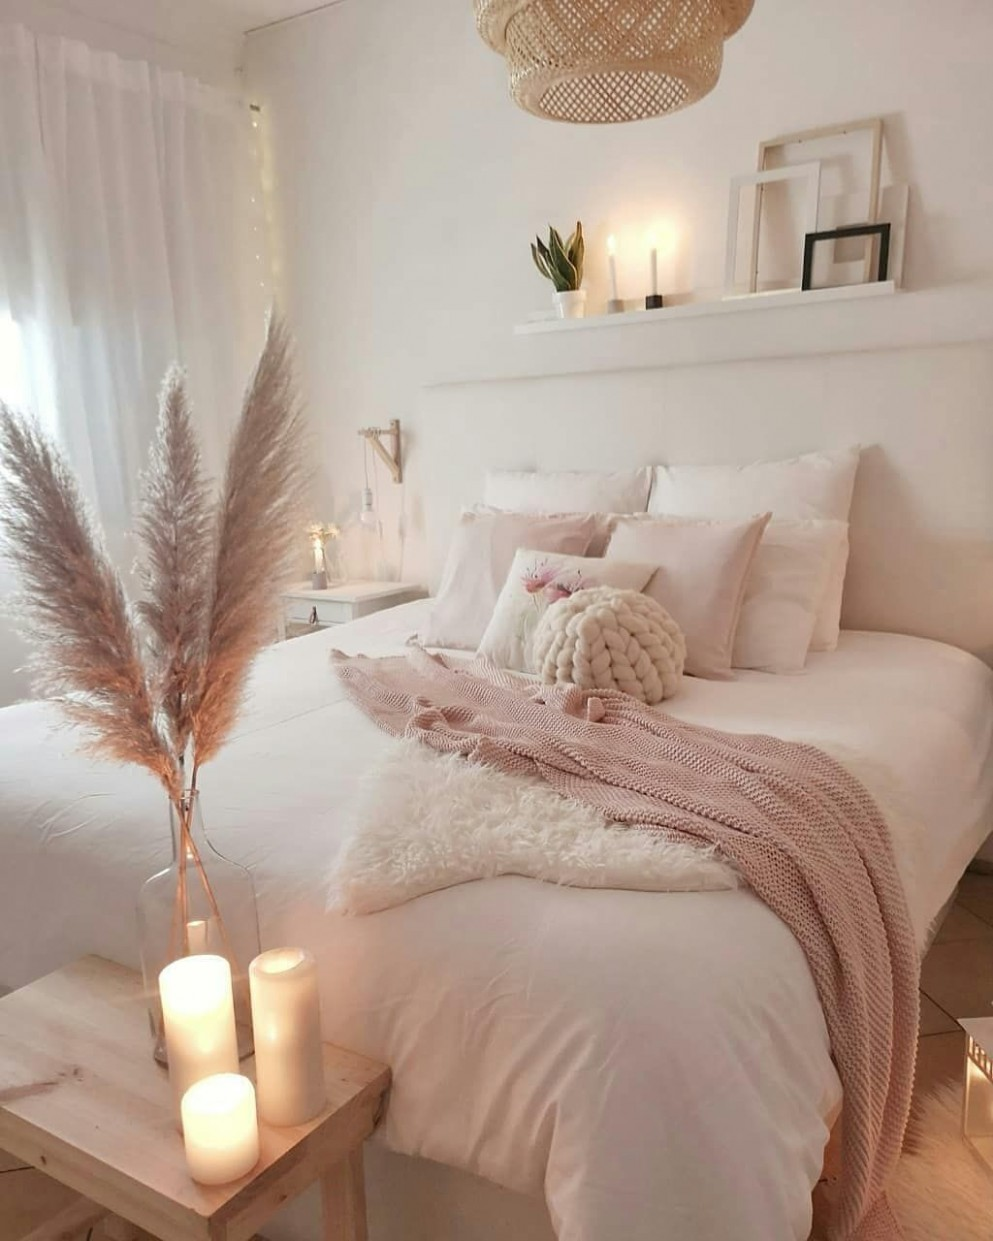 "Room Decor on Instagram: ""8, 8, 8, 8 or 8? Which one  - Bedroom Ideas Instagram"